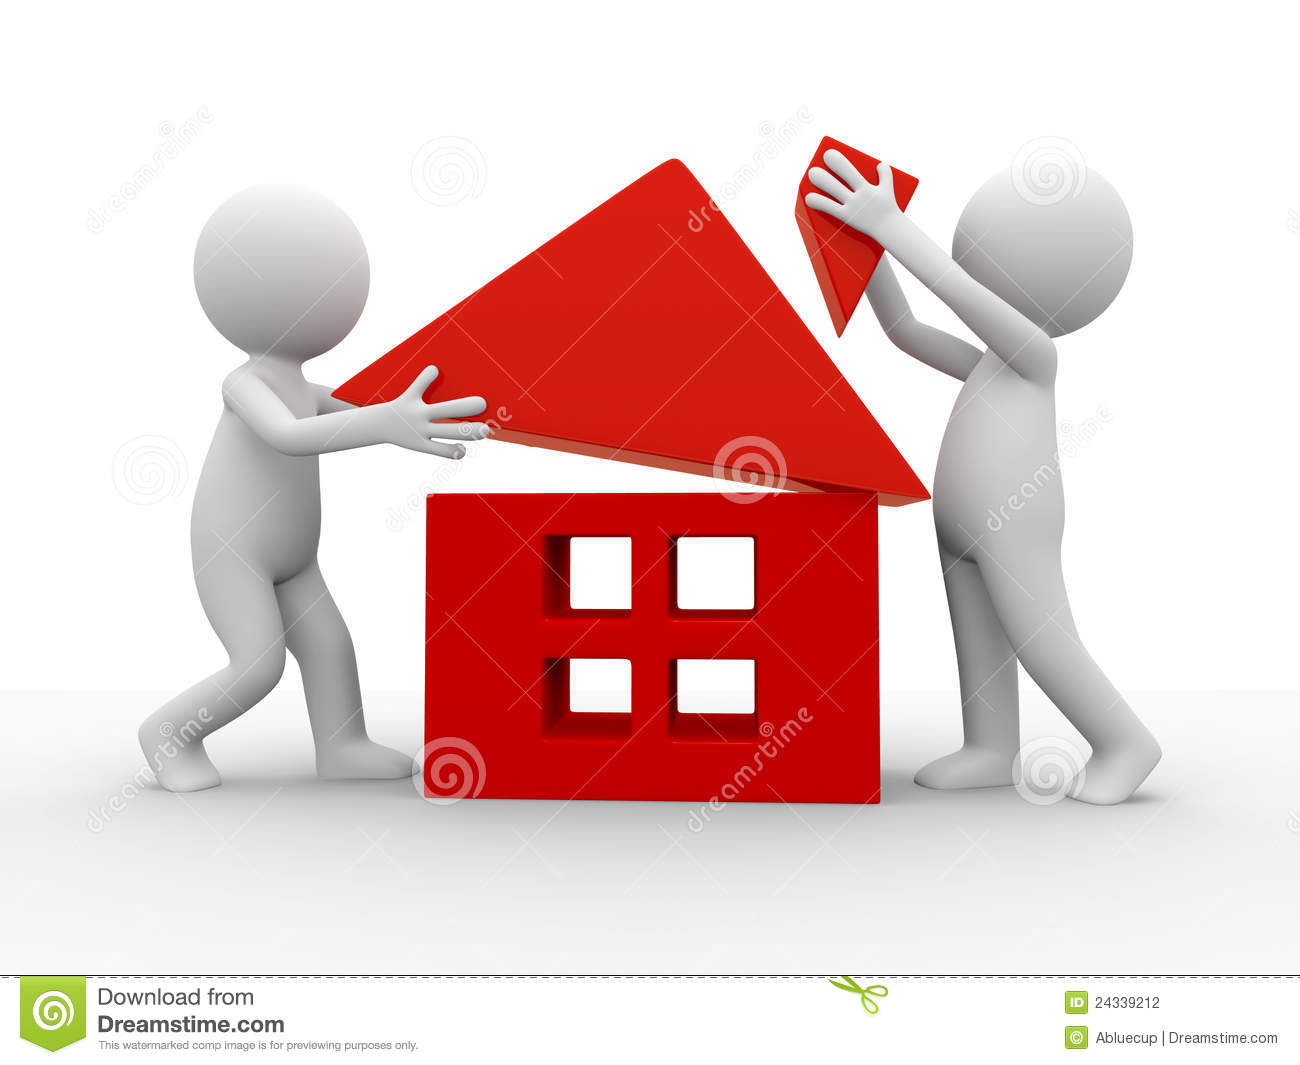 Http Www Dreamstime Com Stock Photography Build House Image24339212